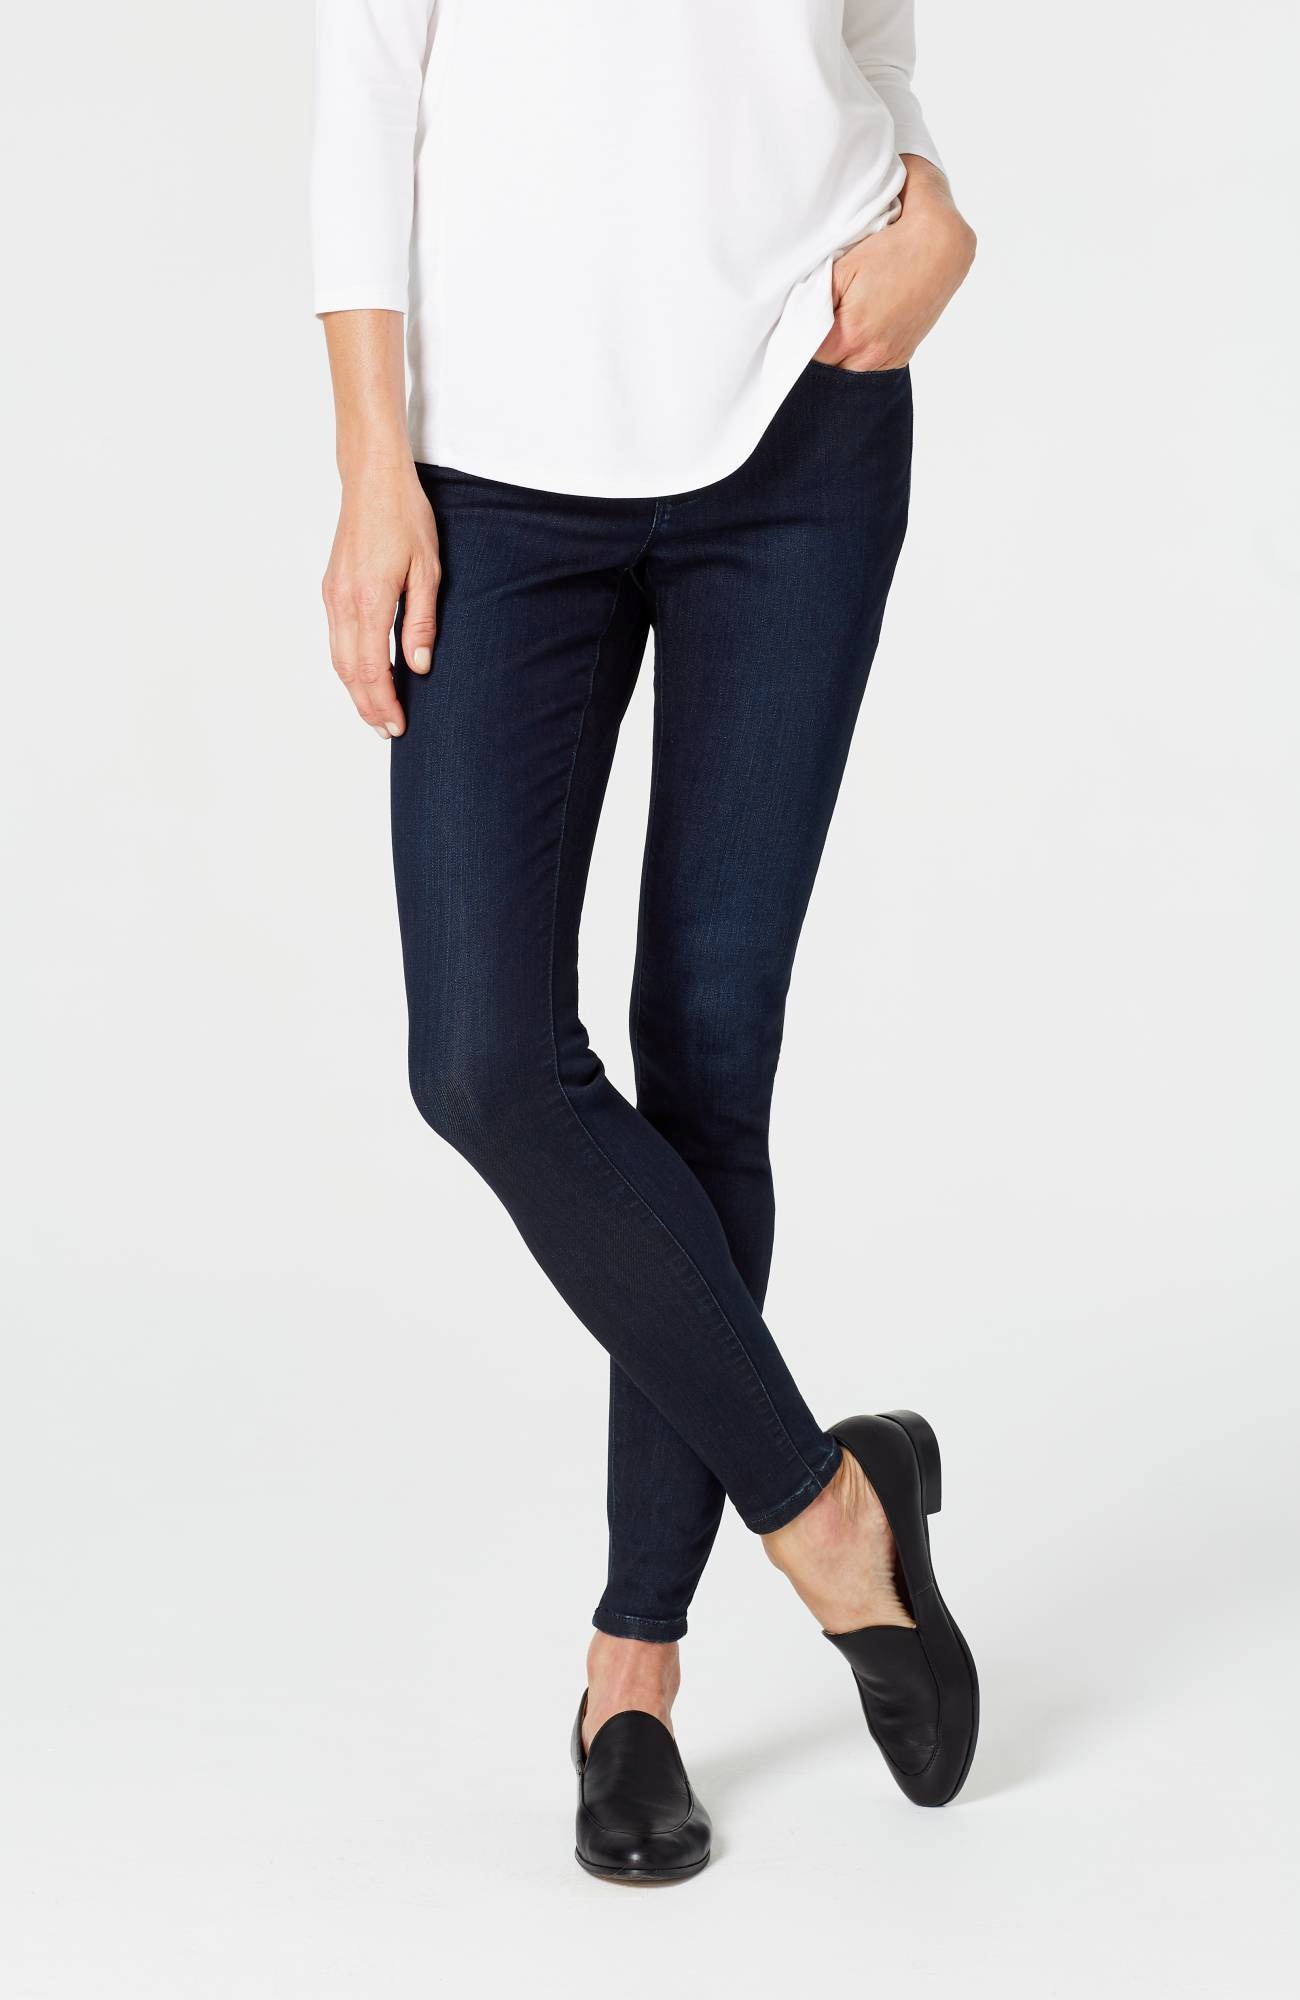 versatile 5-pocket denim leggings